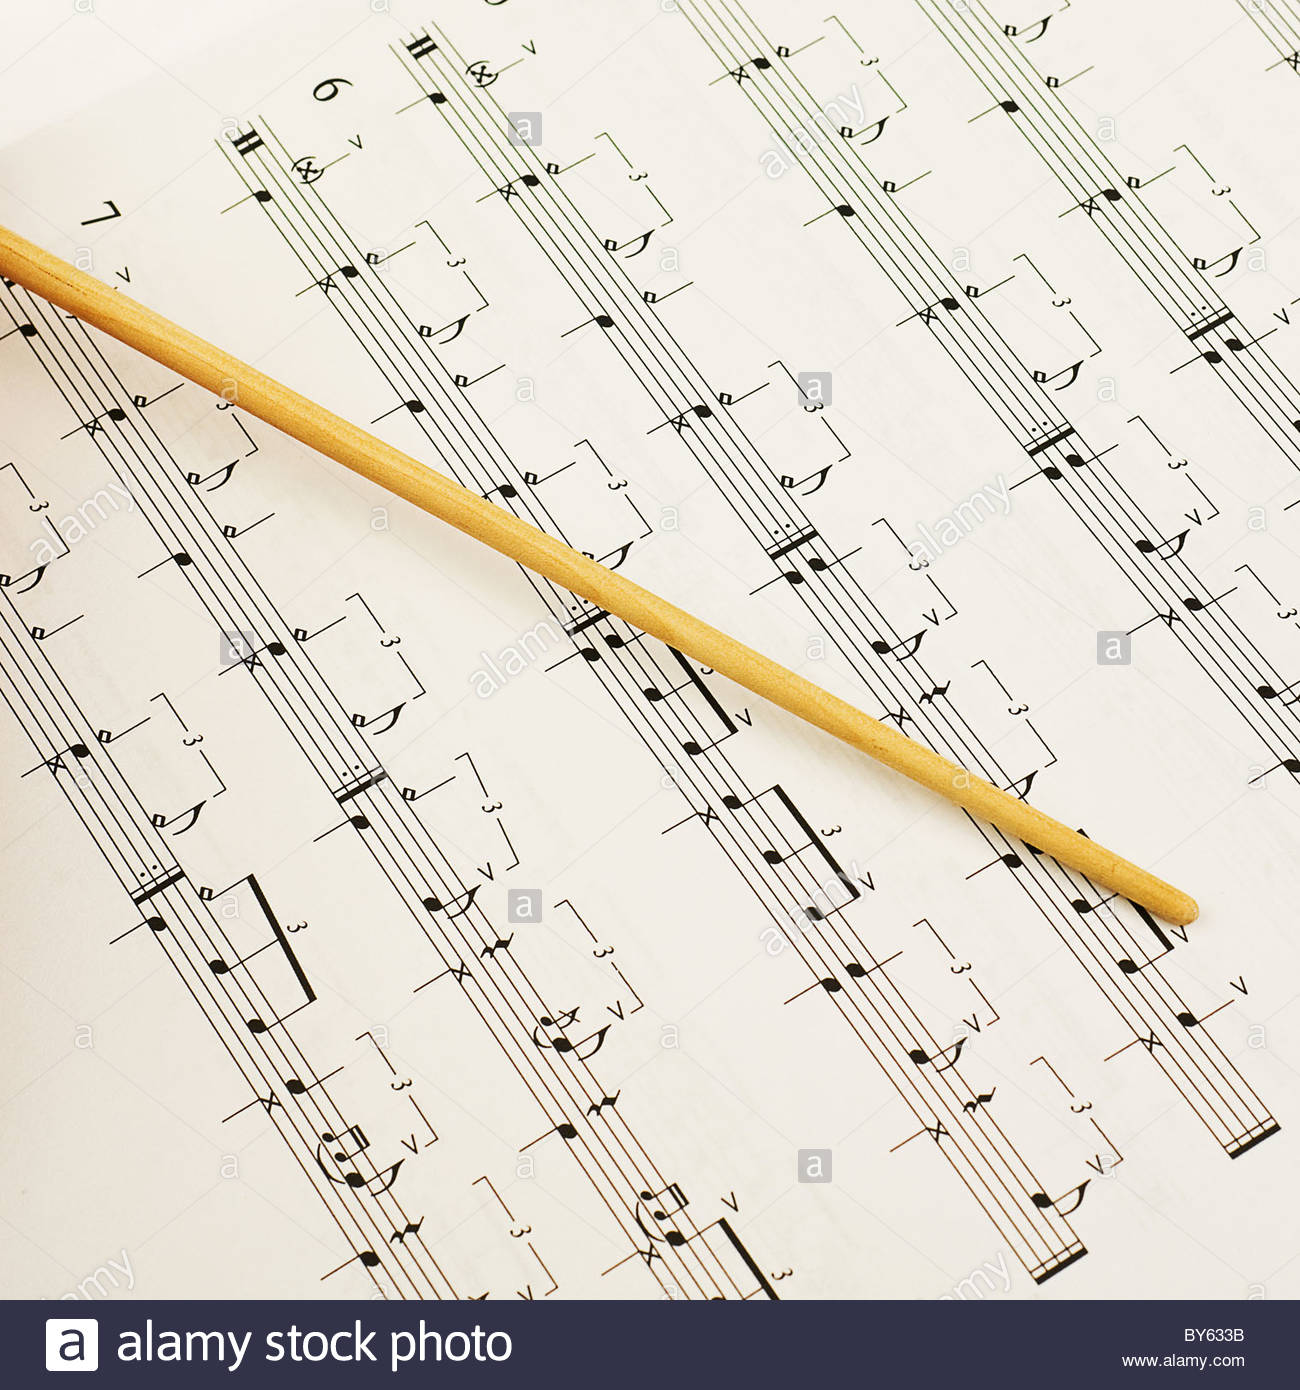 conductor baton and sheet music - Stock Image